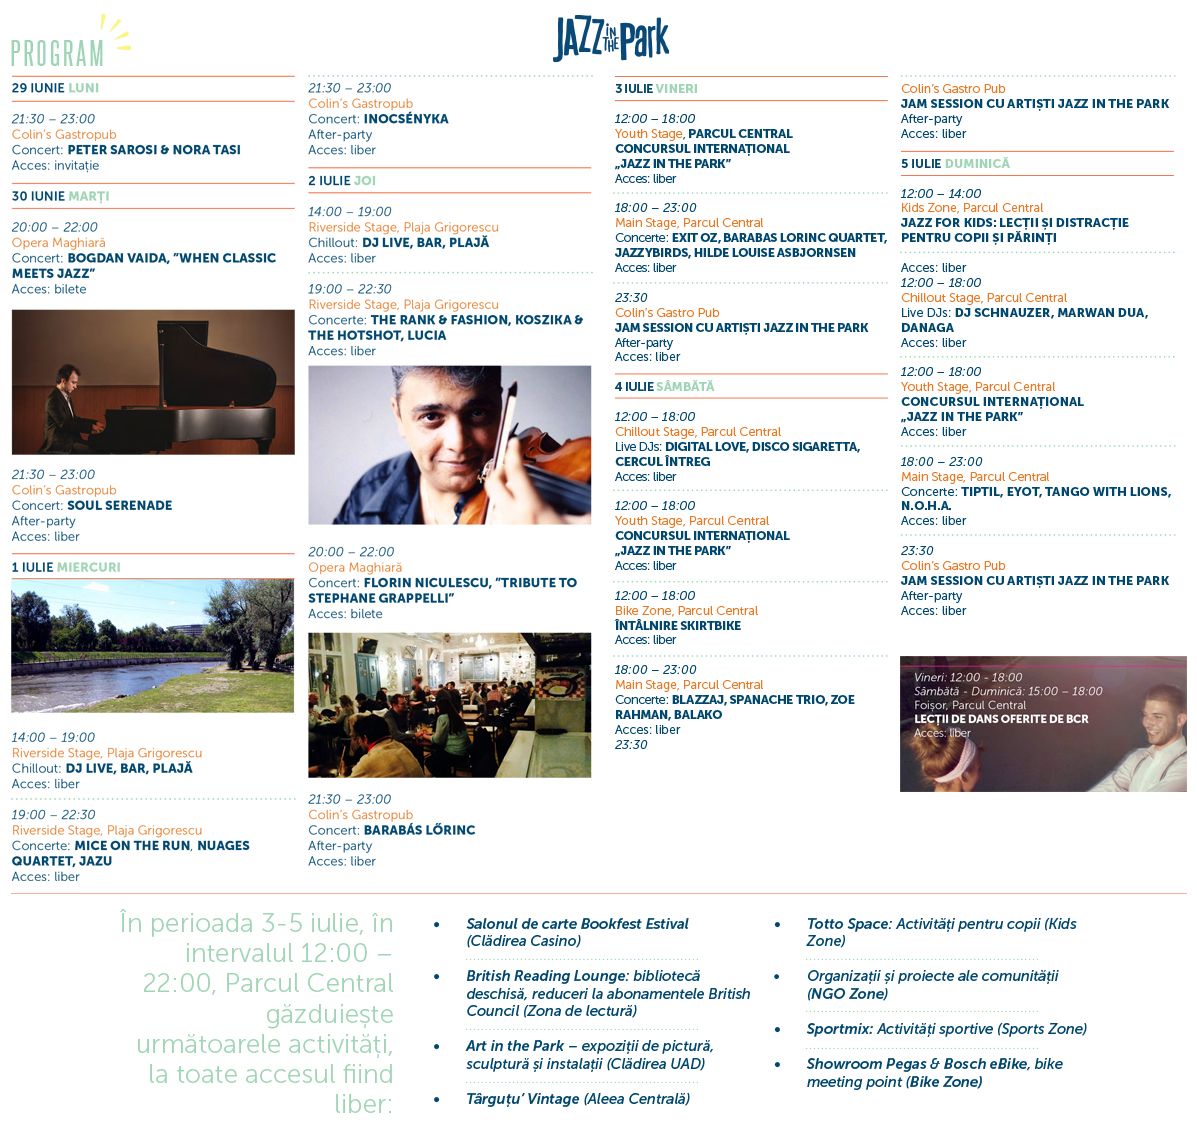 Program Jazz in the Park 2015(1)